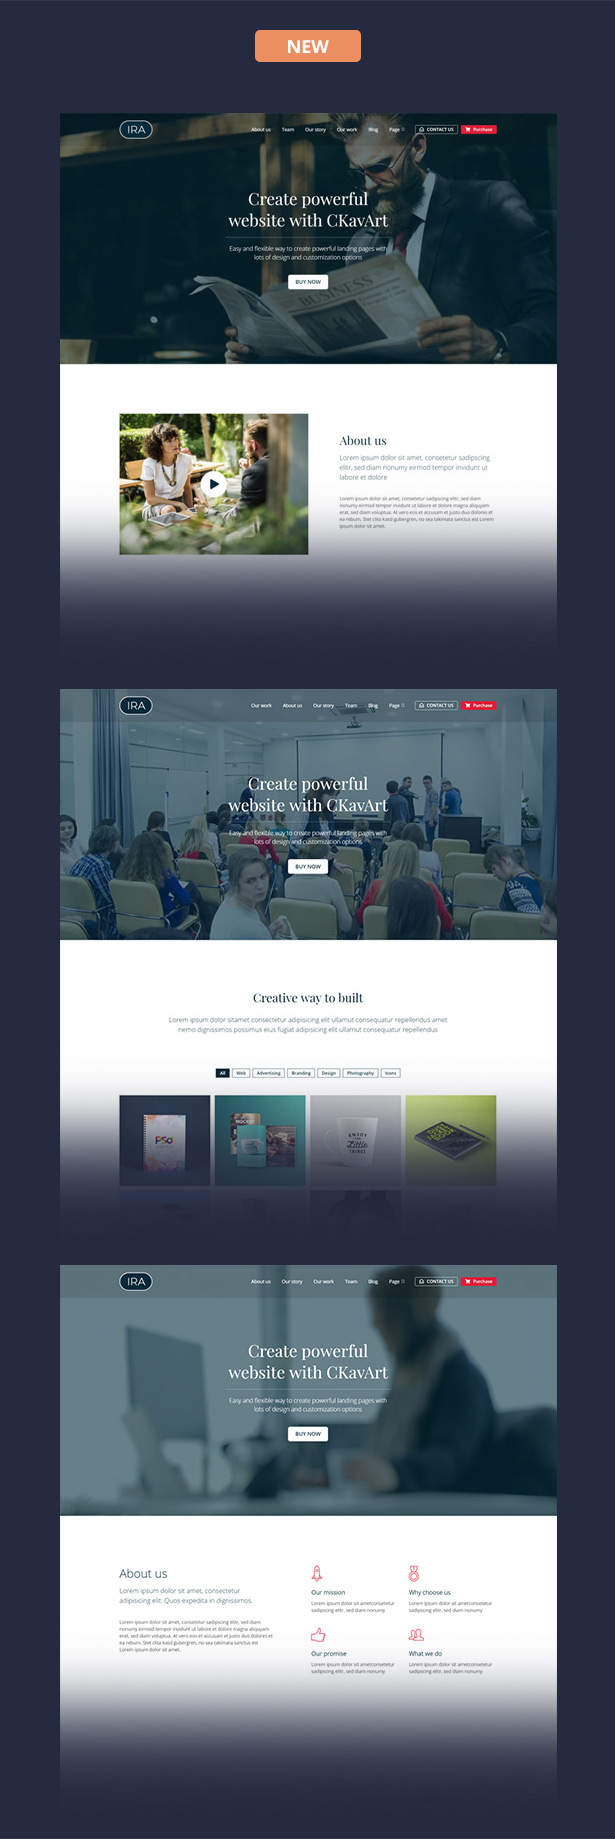 Creative One Page HTML Template - IRA - 1